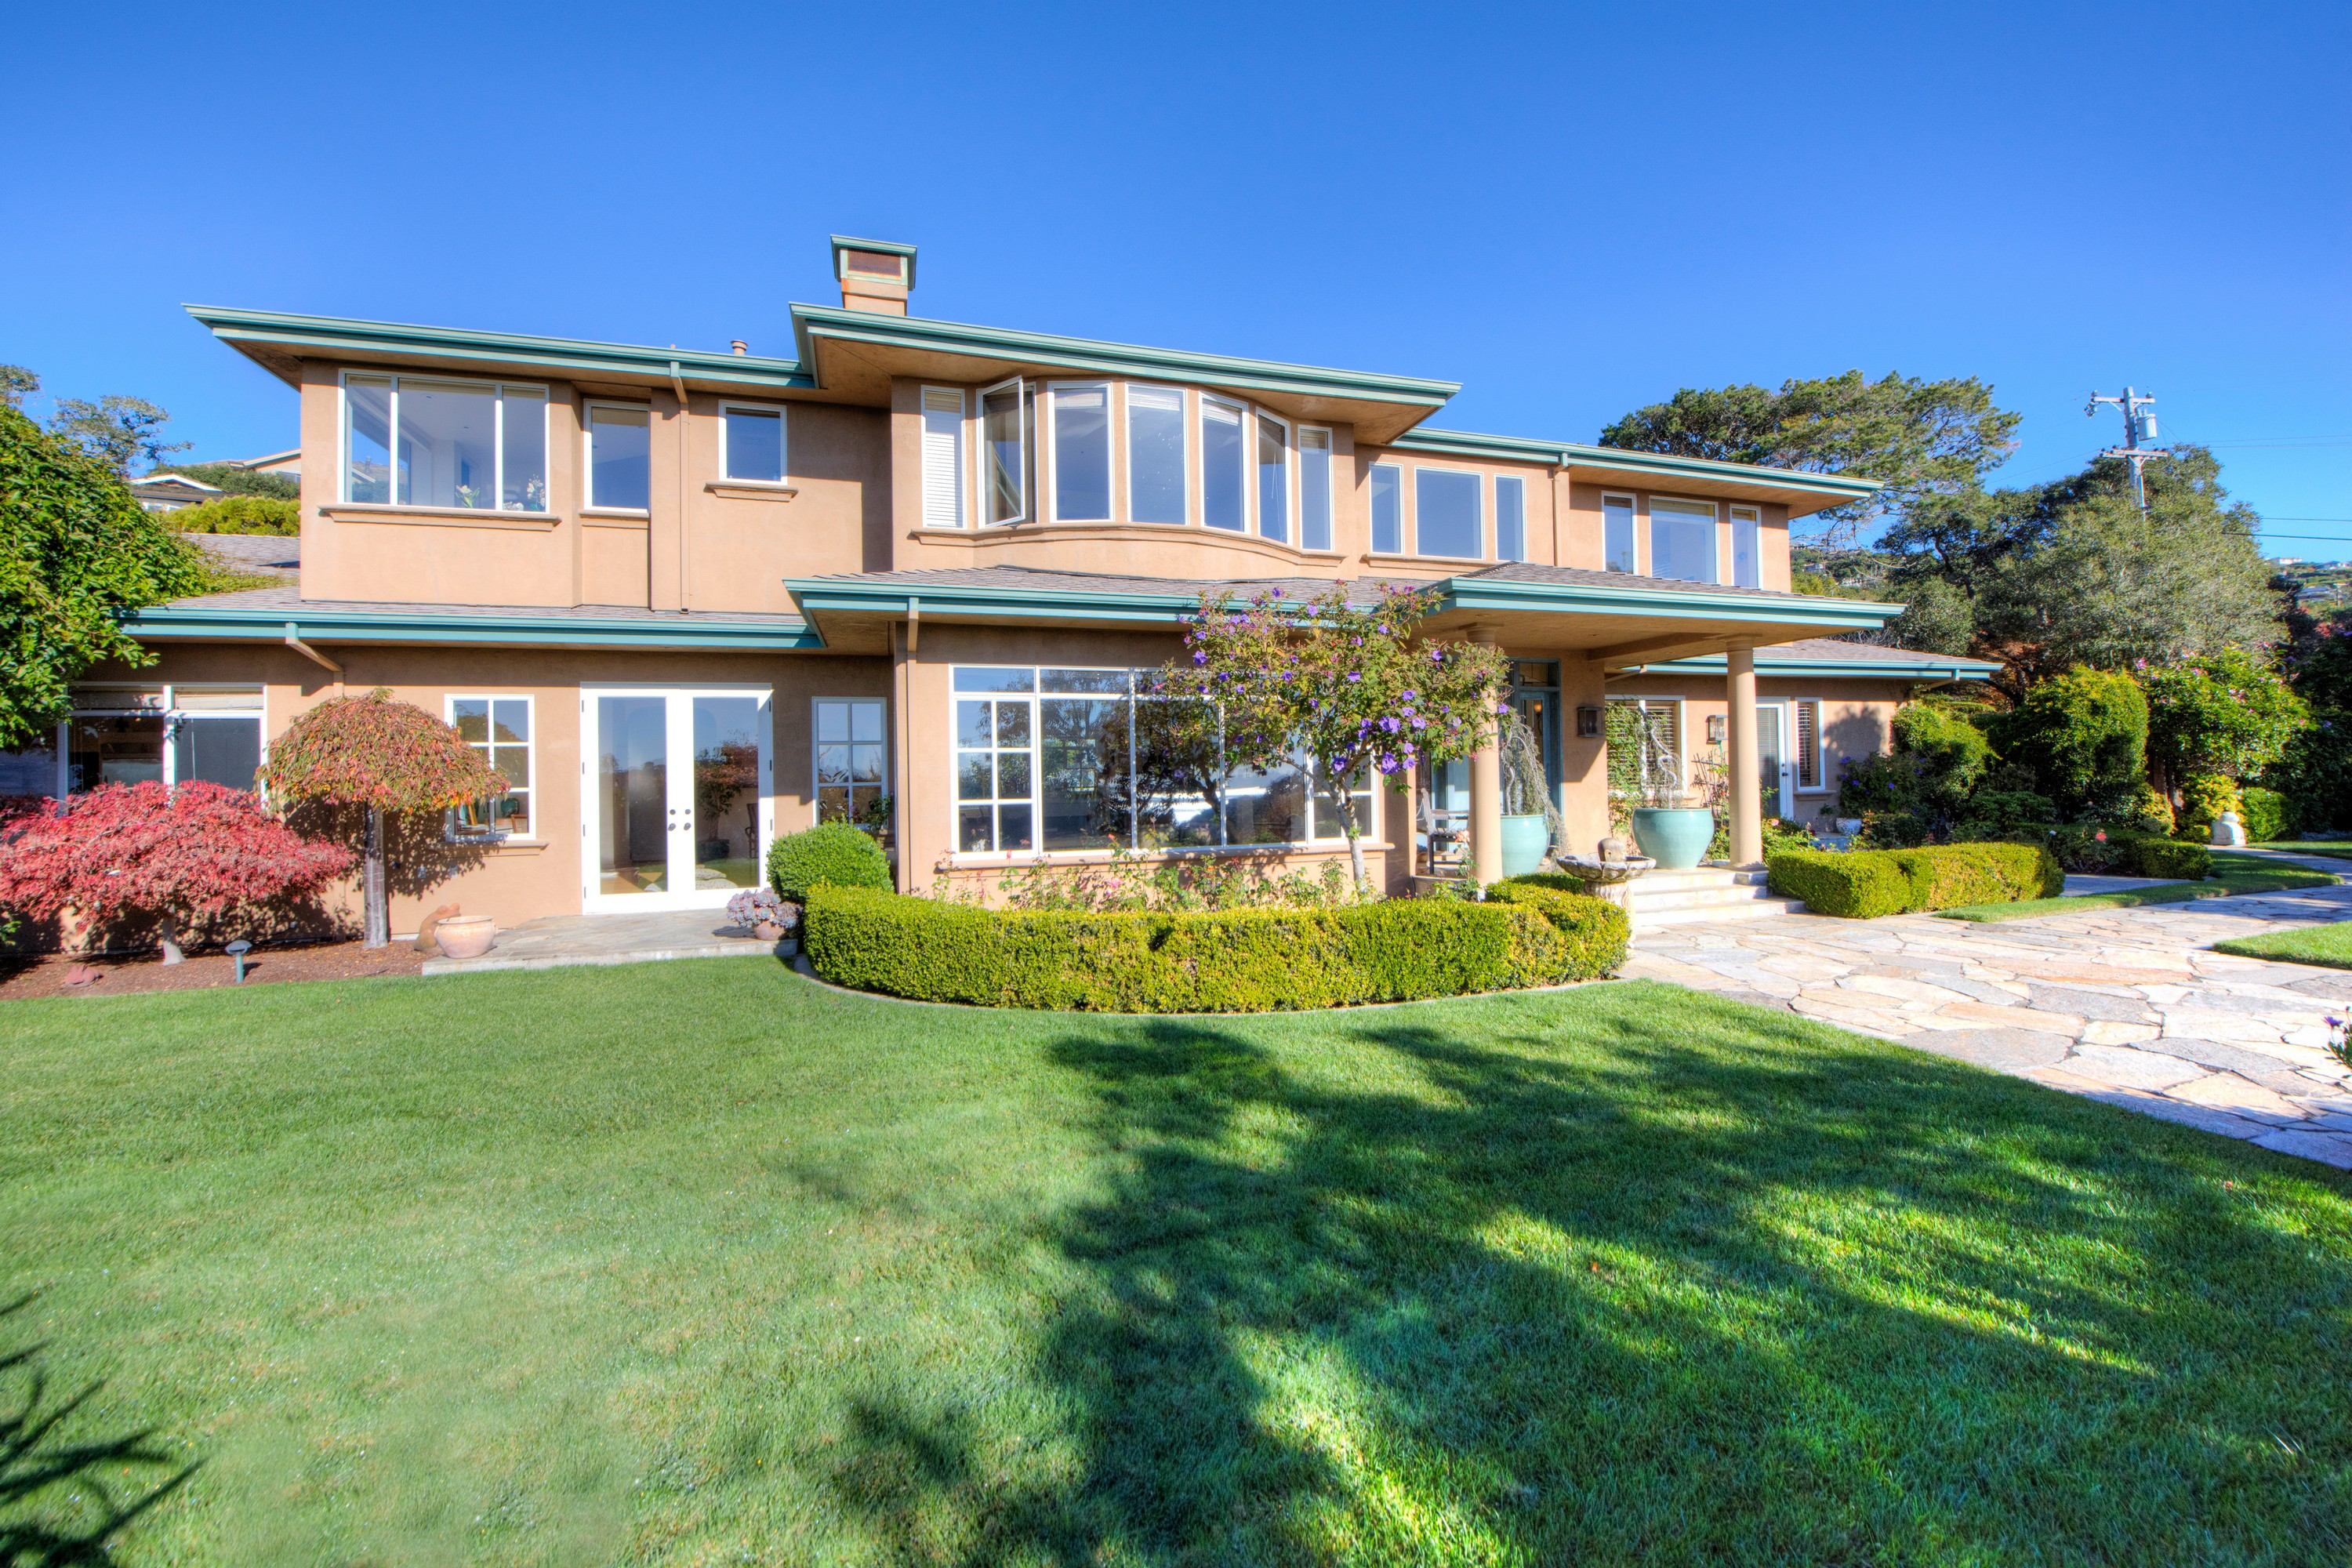 Single Family Home for Rent at Exclusive Tiburon Home with Views and Privacy 12 Spring Lane Tiburon, California 94920 United States